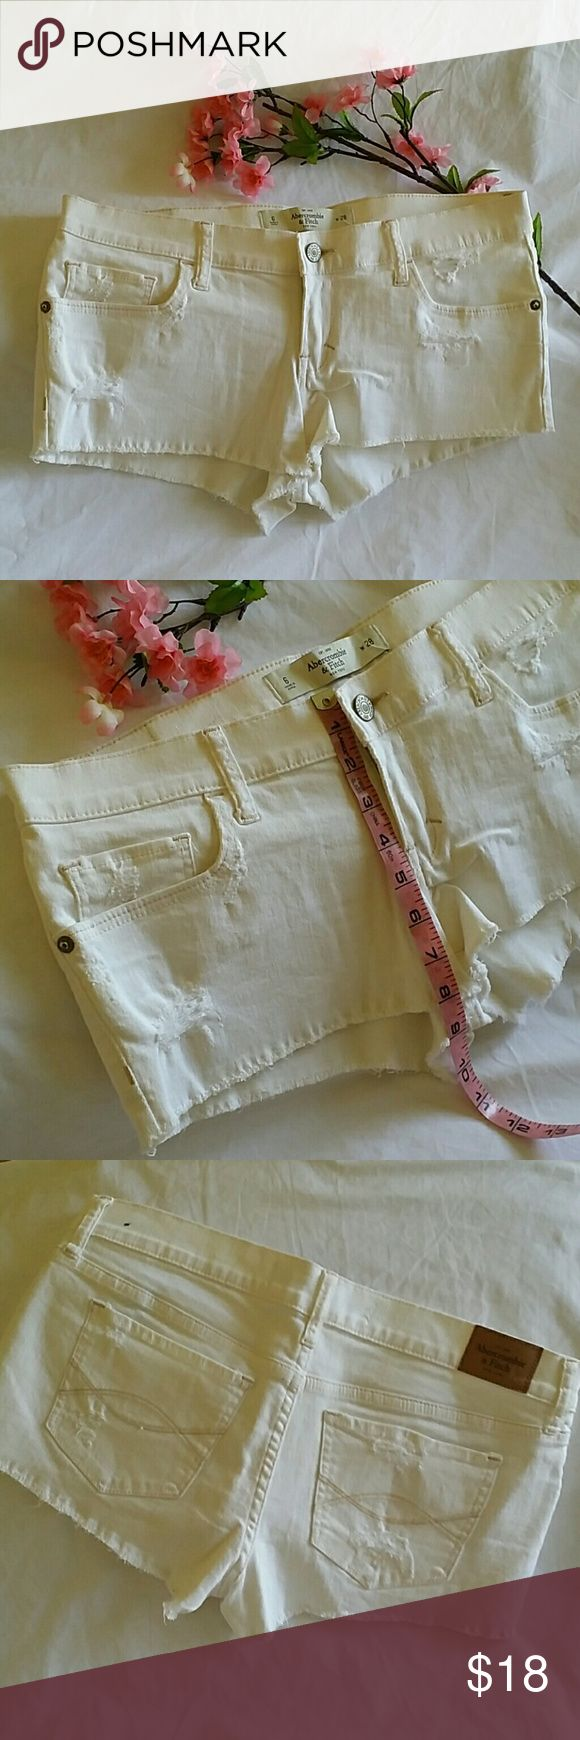 Abercrombie & Fitch Jeans Shorts Abercrombie & Fitch jeans Shorts Abercrombie & Fitch Jeans